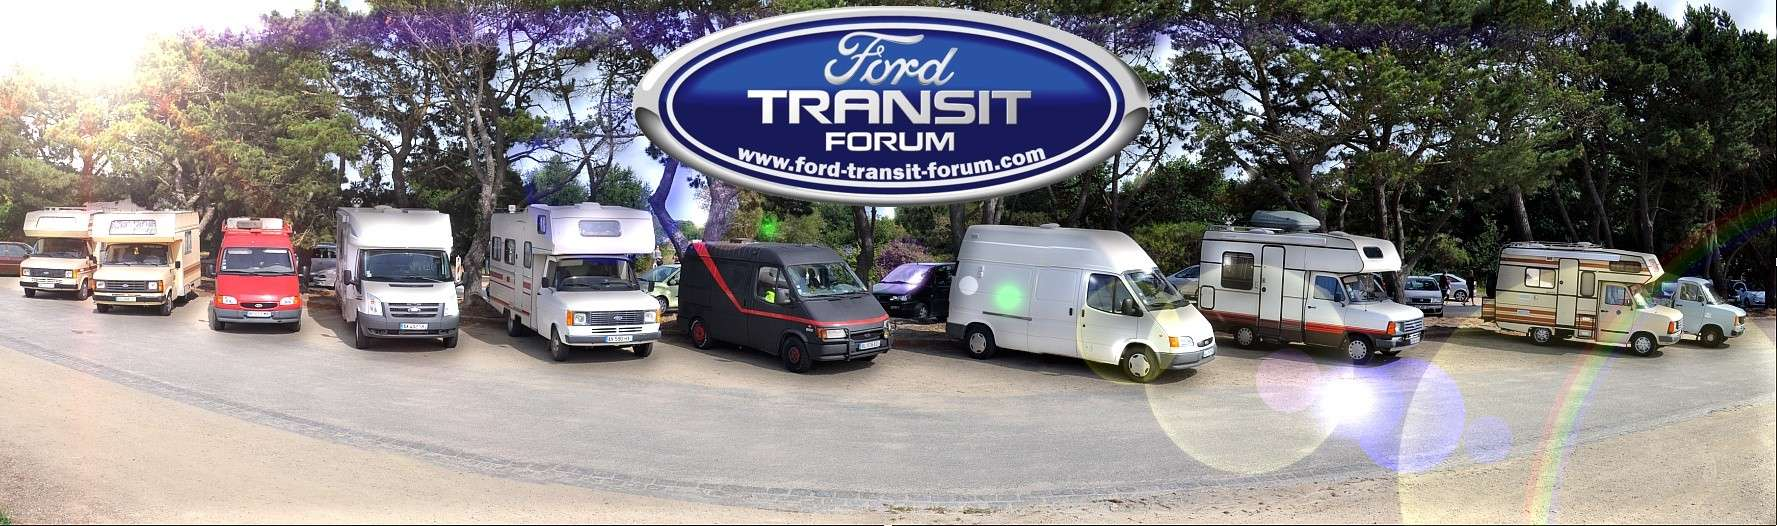 Ford Transit Forum